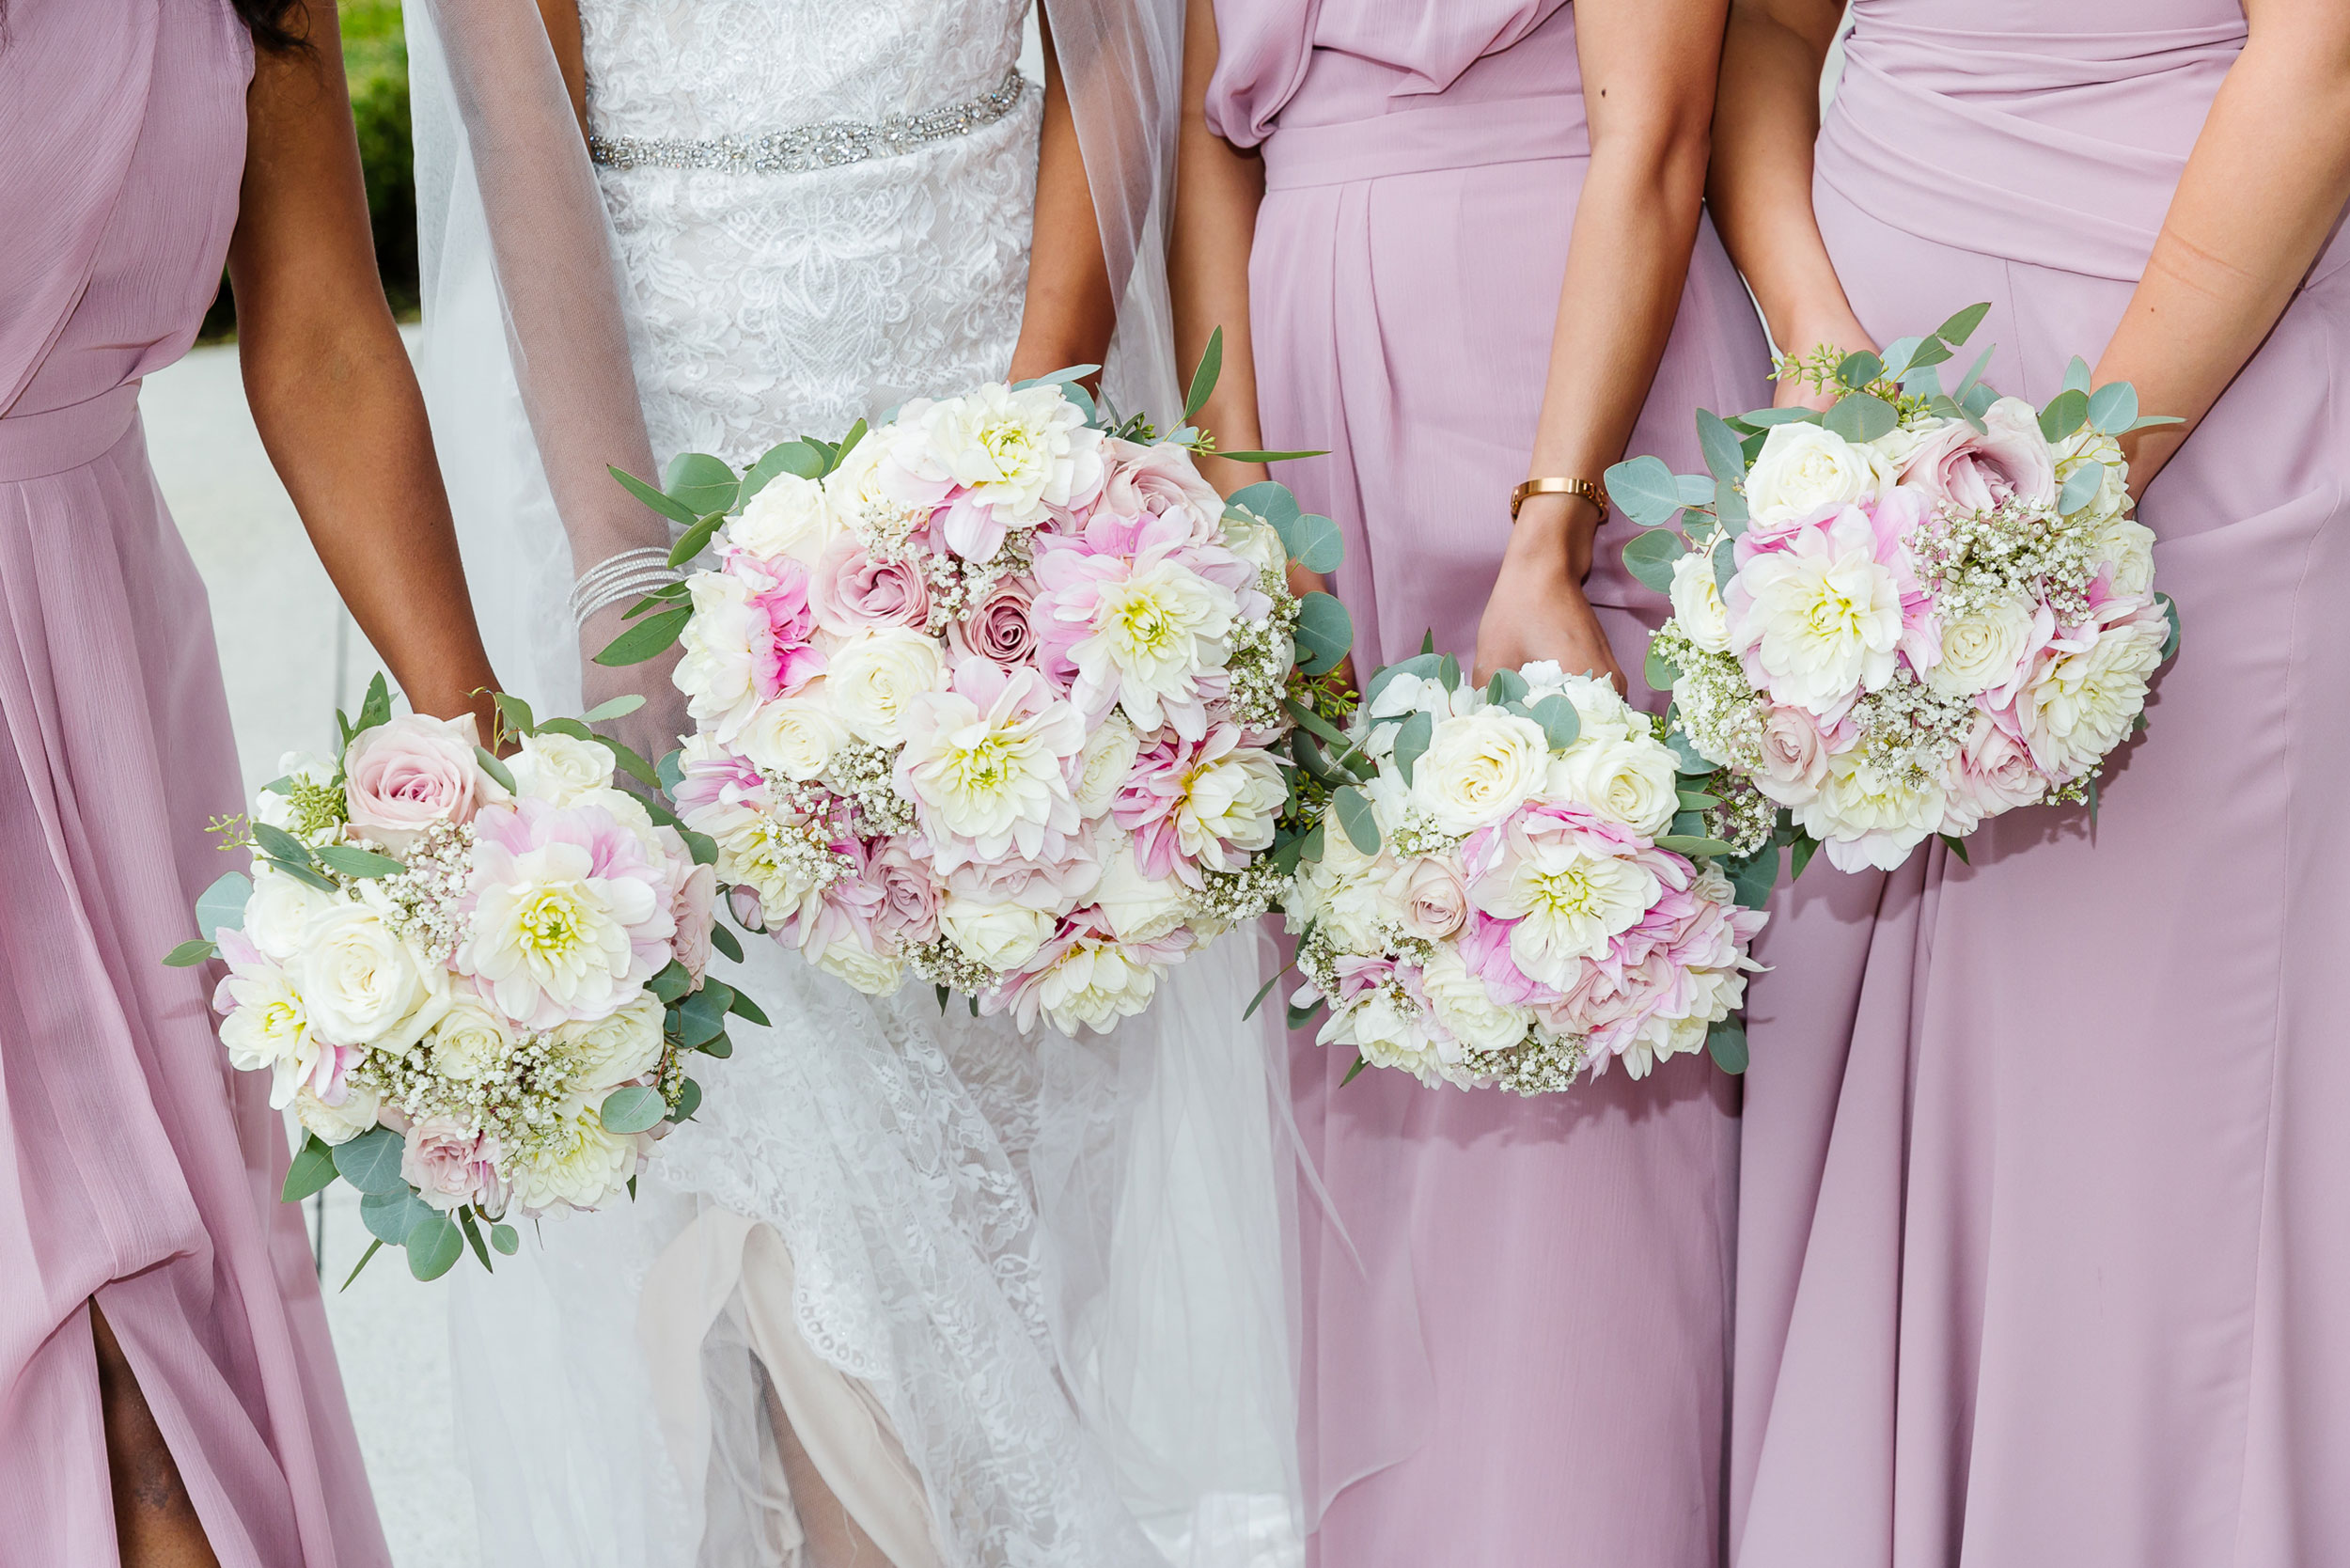 Spring floral bouquets held by bride and bridesmaid during wedding ceremony at Newlands